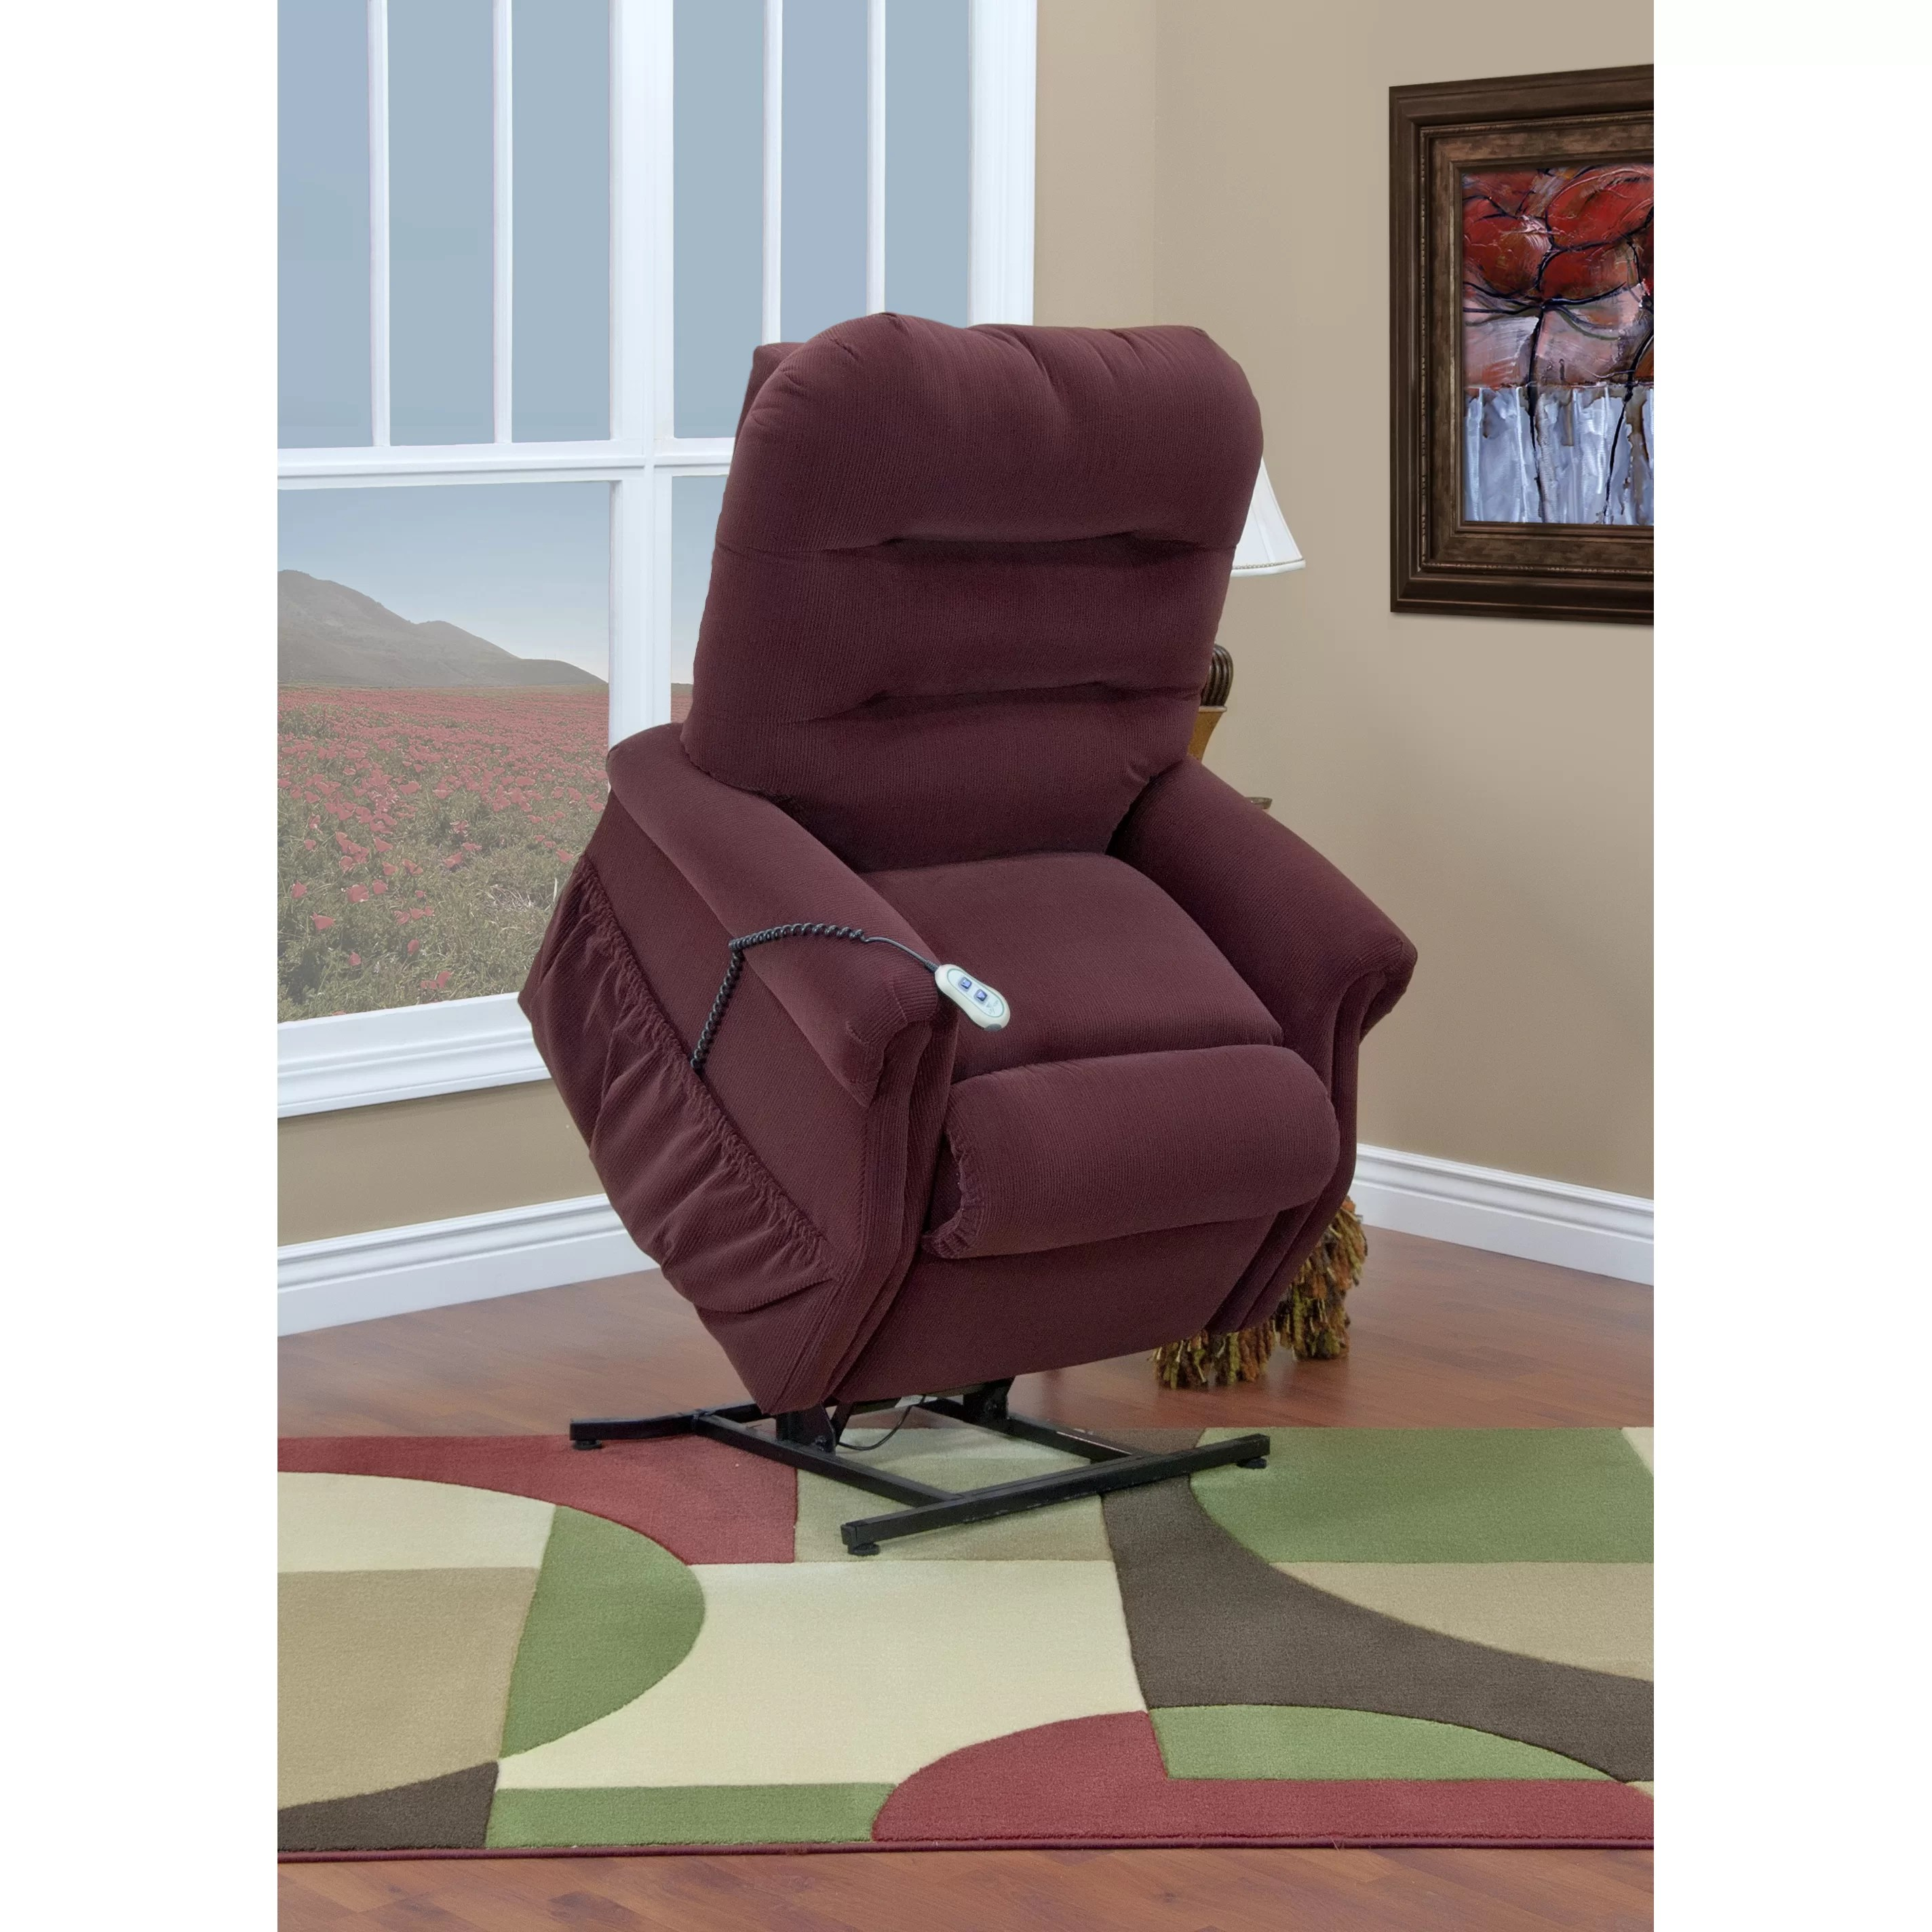 Med Lift Chairs Med Lift 30 Series Wide Three Way Reclining Lift Chair